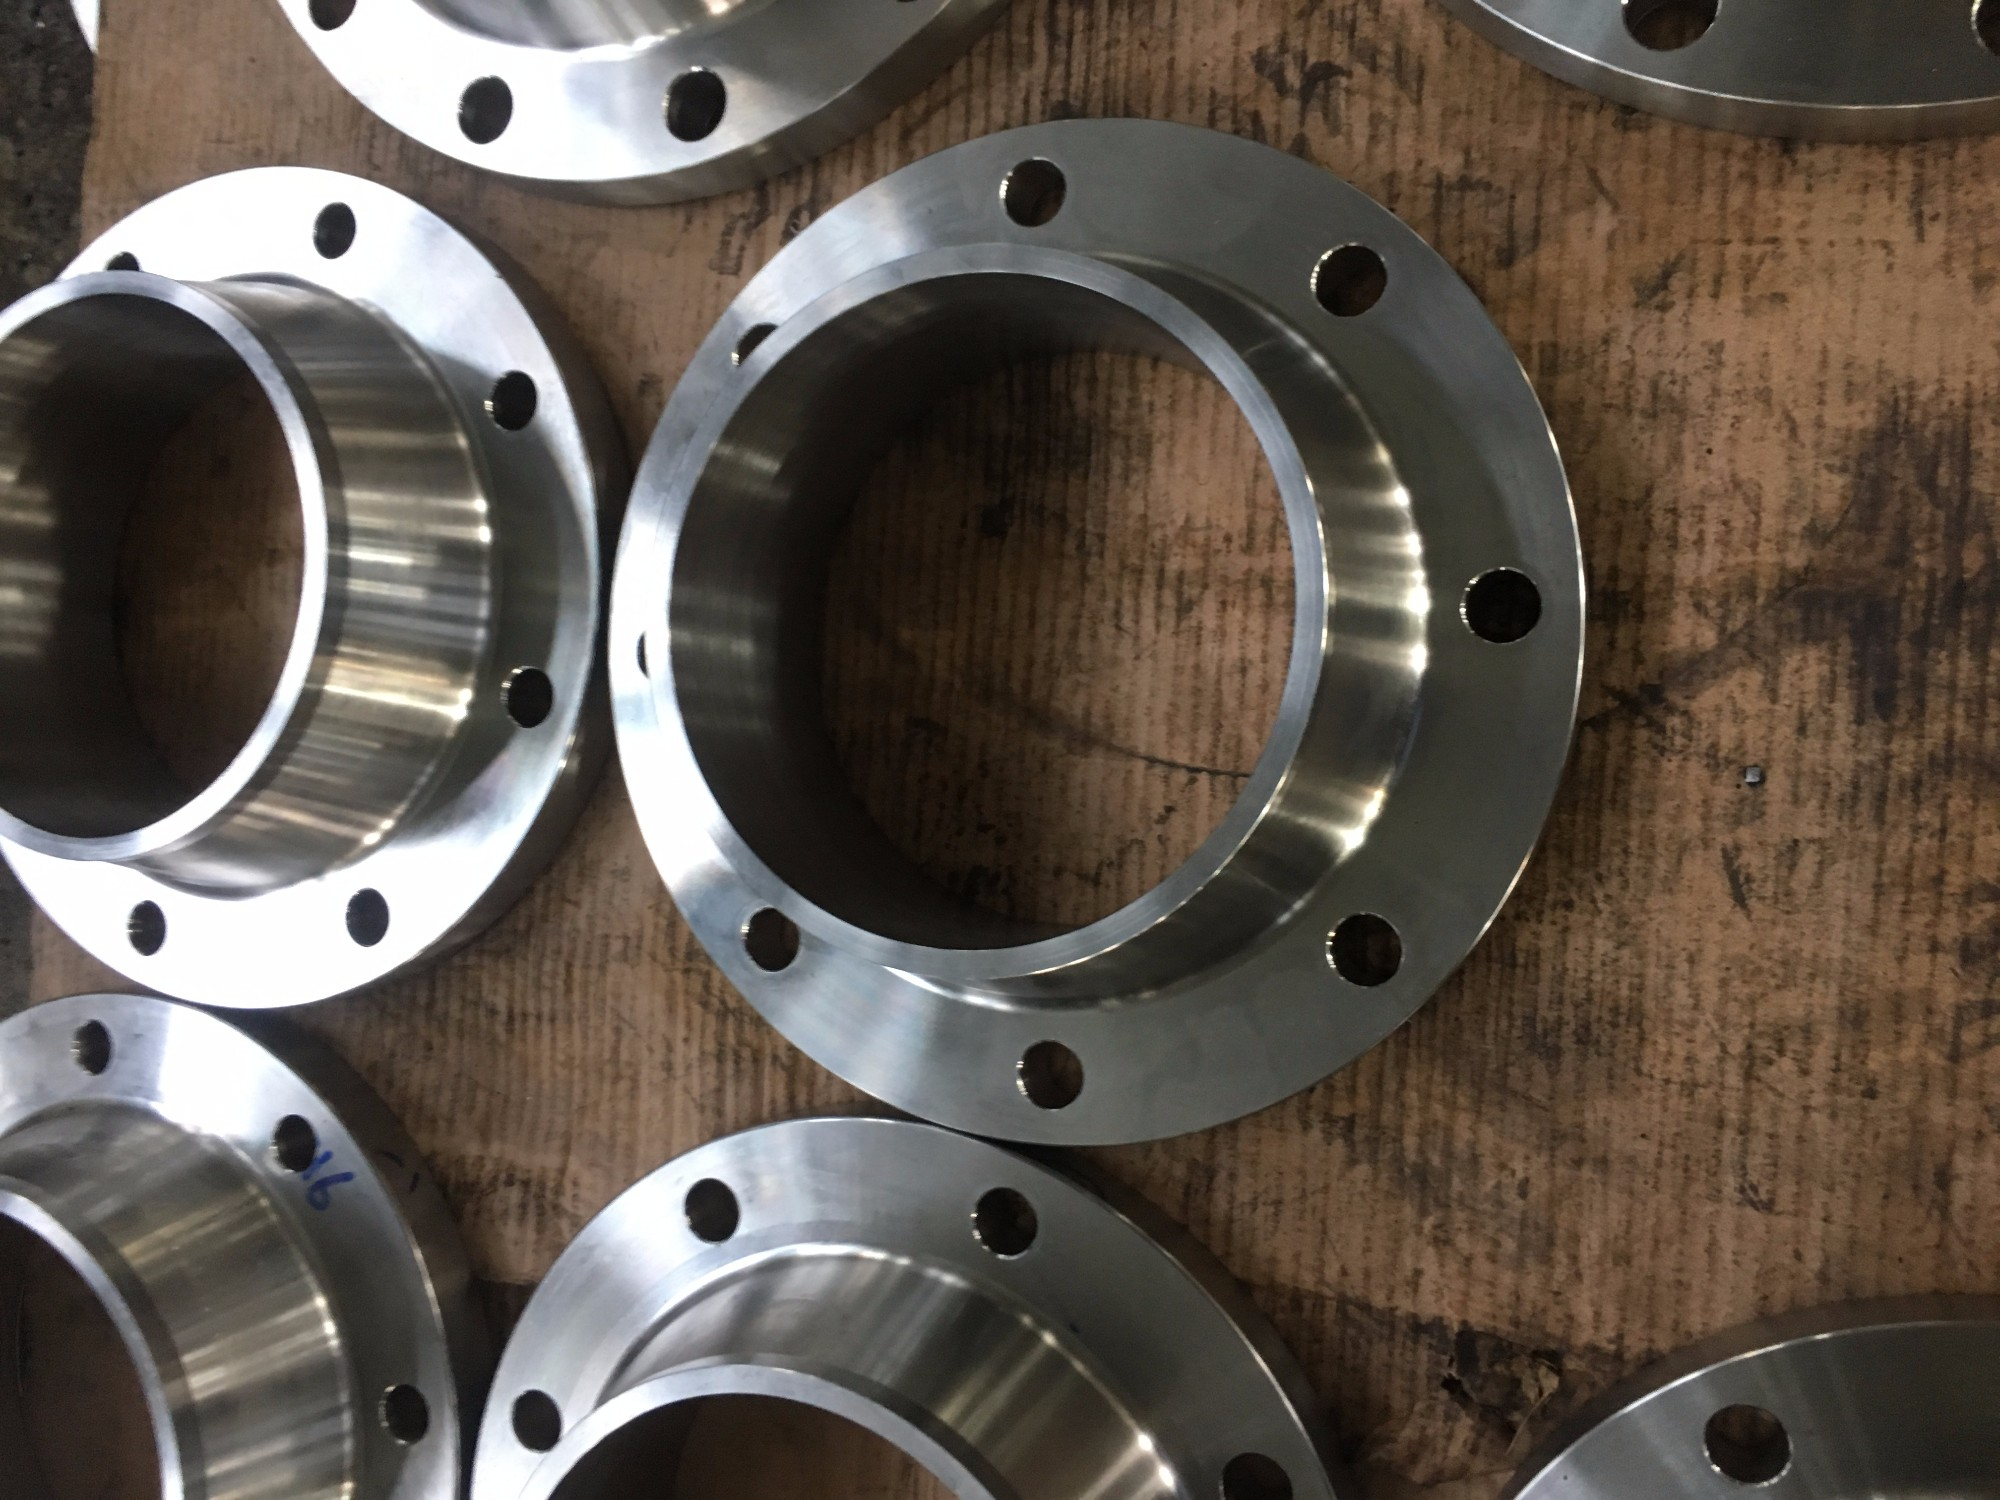 Forged Nickel Alloy Weld Neck Flanges Manufacturers, Forged Nickel Alloy Weld Neck Flanges Factory, Supply Forged Nickel Alloy Weld Neck Flanges